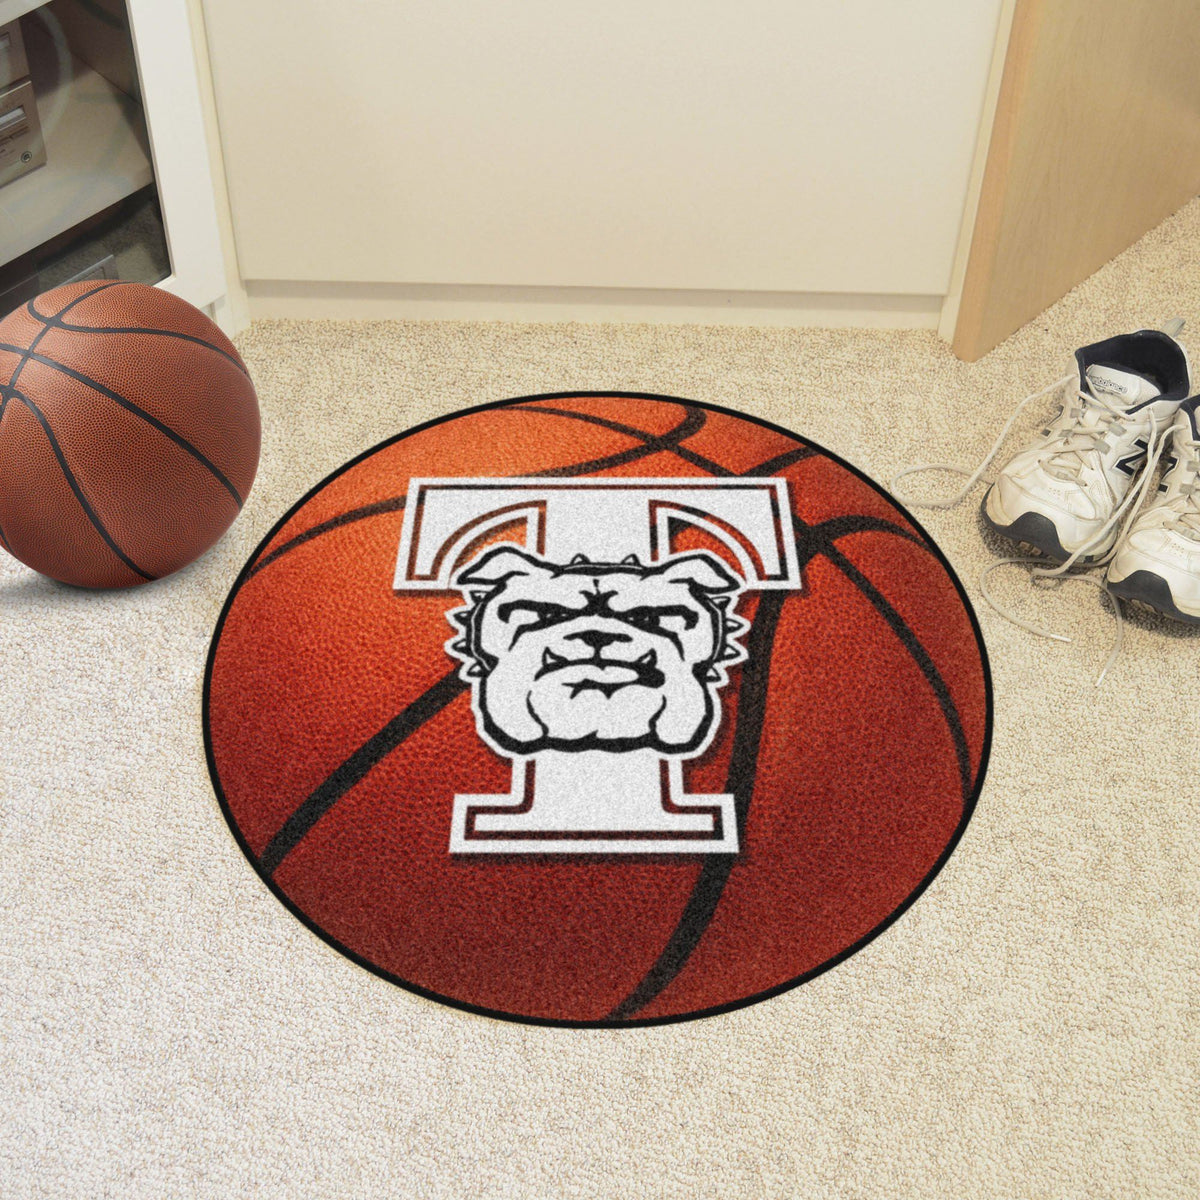 Collegiate - Basketball Mat: T - Z Collegiate Mats, Rectangular Mats, Basketball Mat, Collegiate, Home Fan Mats Truman State